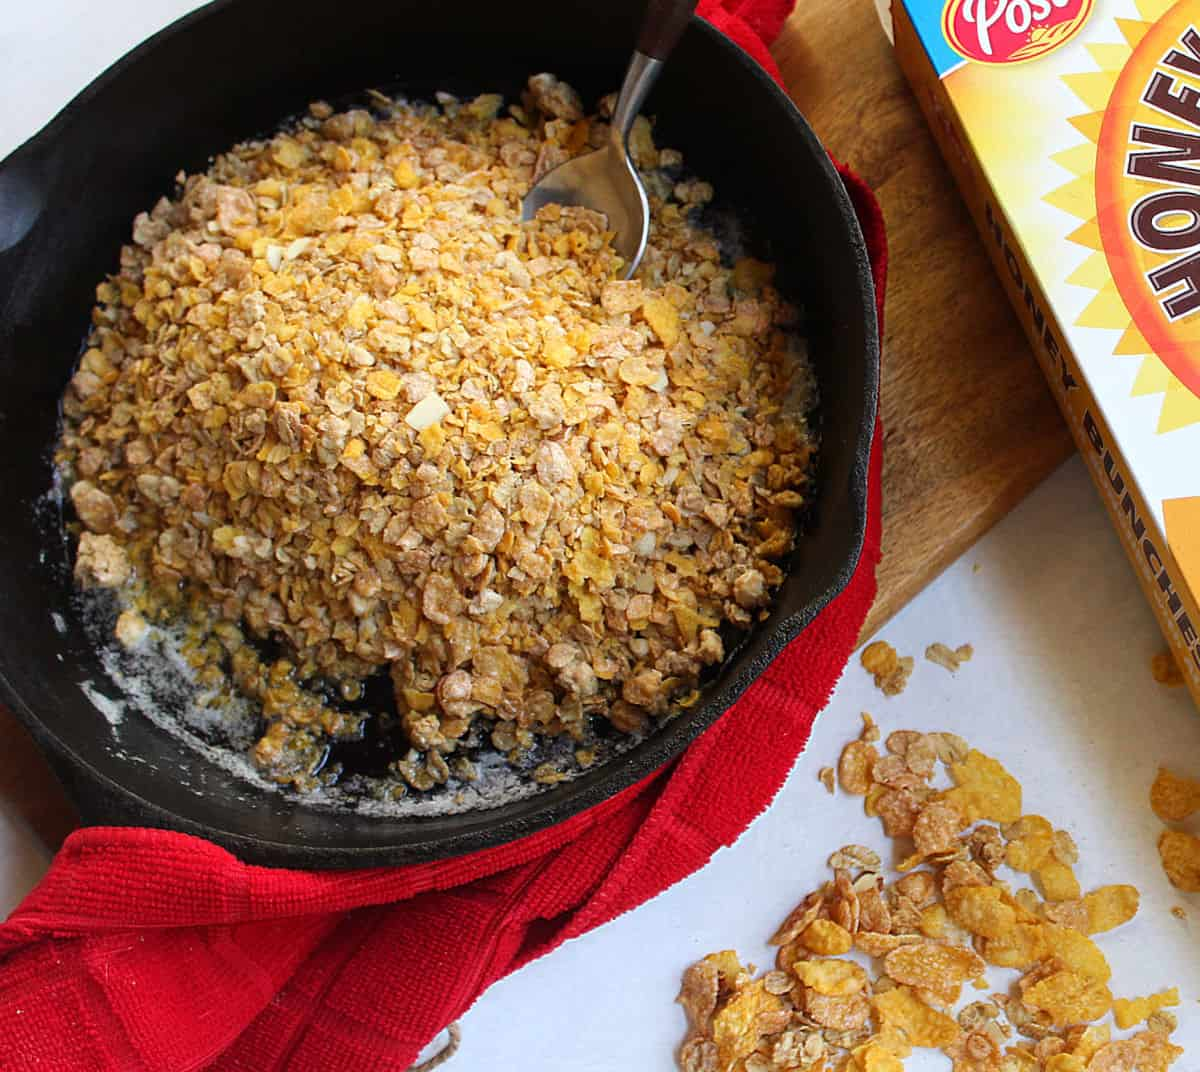 Toasting cereal in melted butter in a cast iron skillet